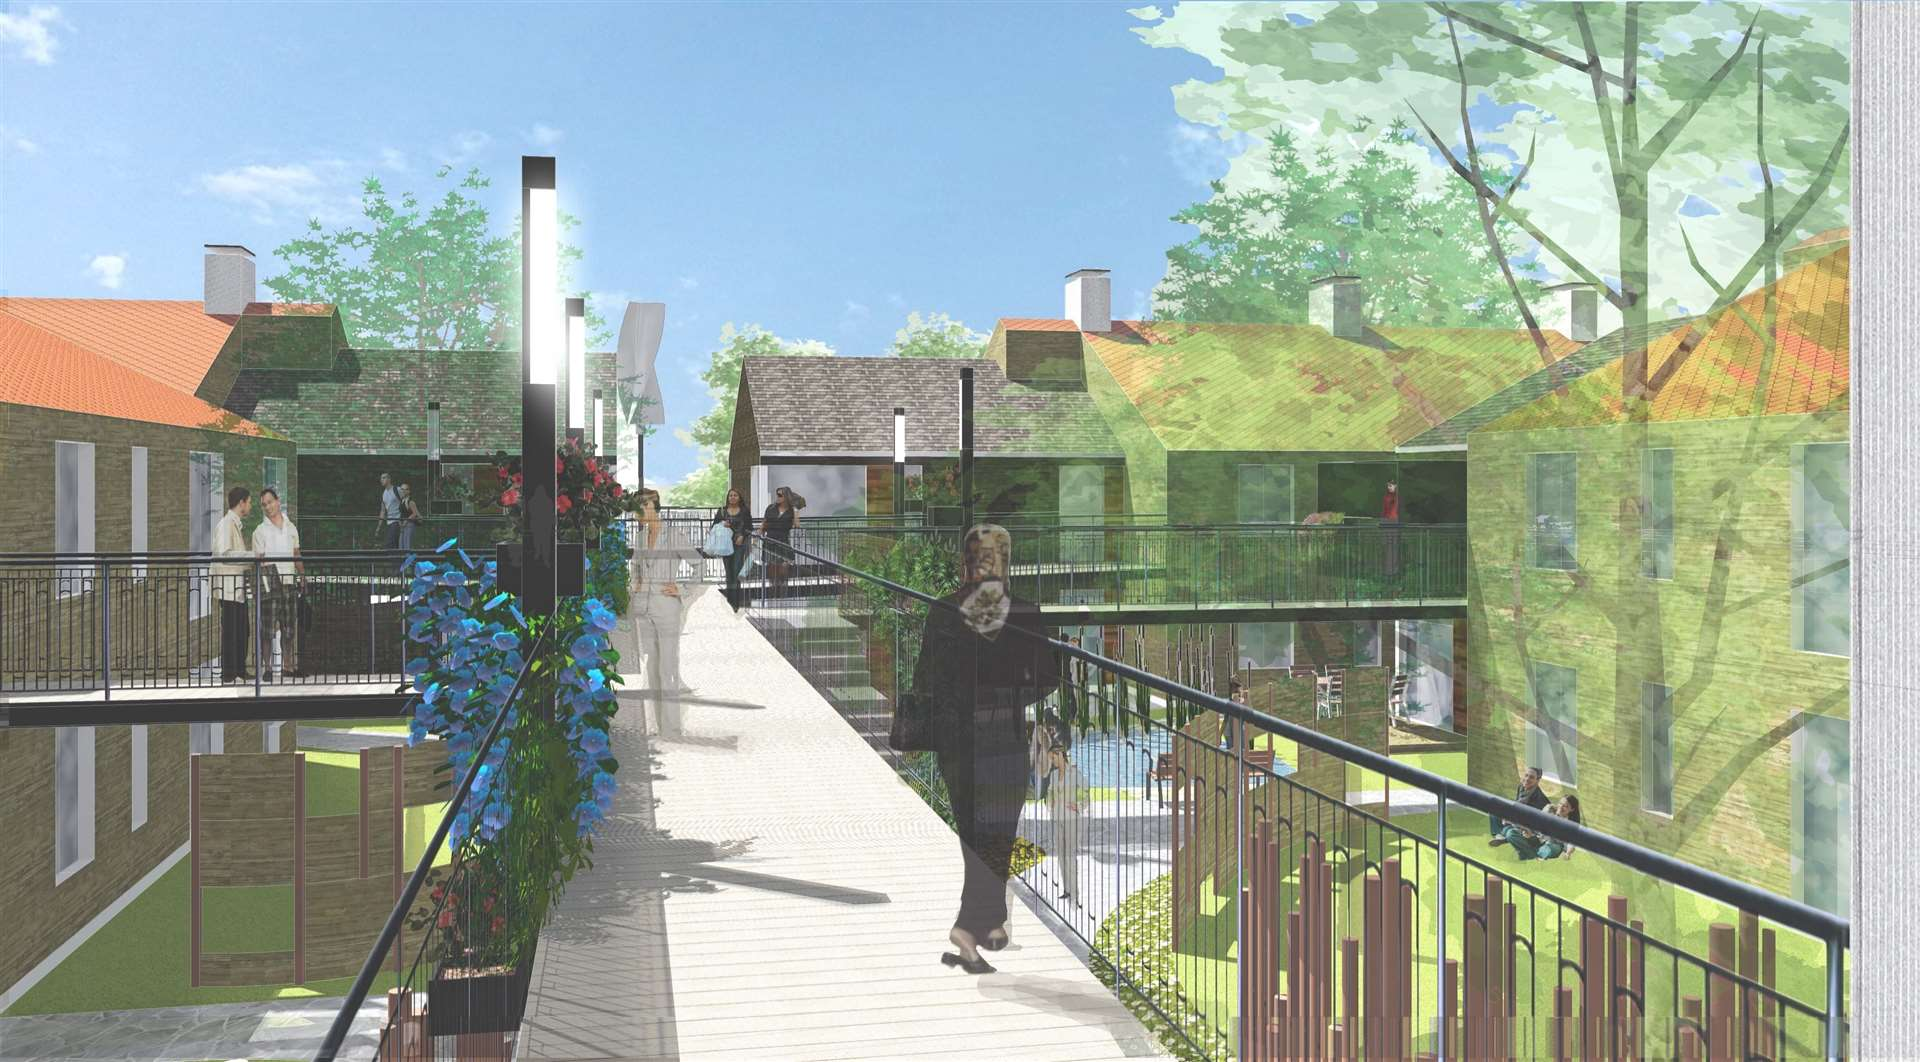 A graphic of how the dementia care village at Little Court near Haverhill would look. Image by Jordan+Bateman architects